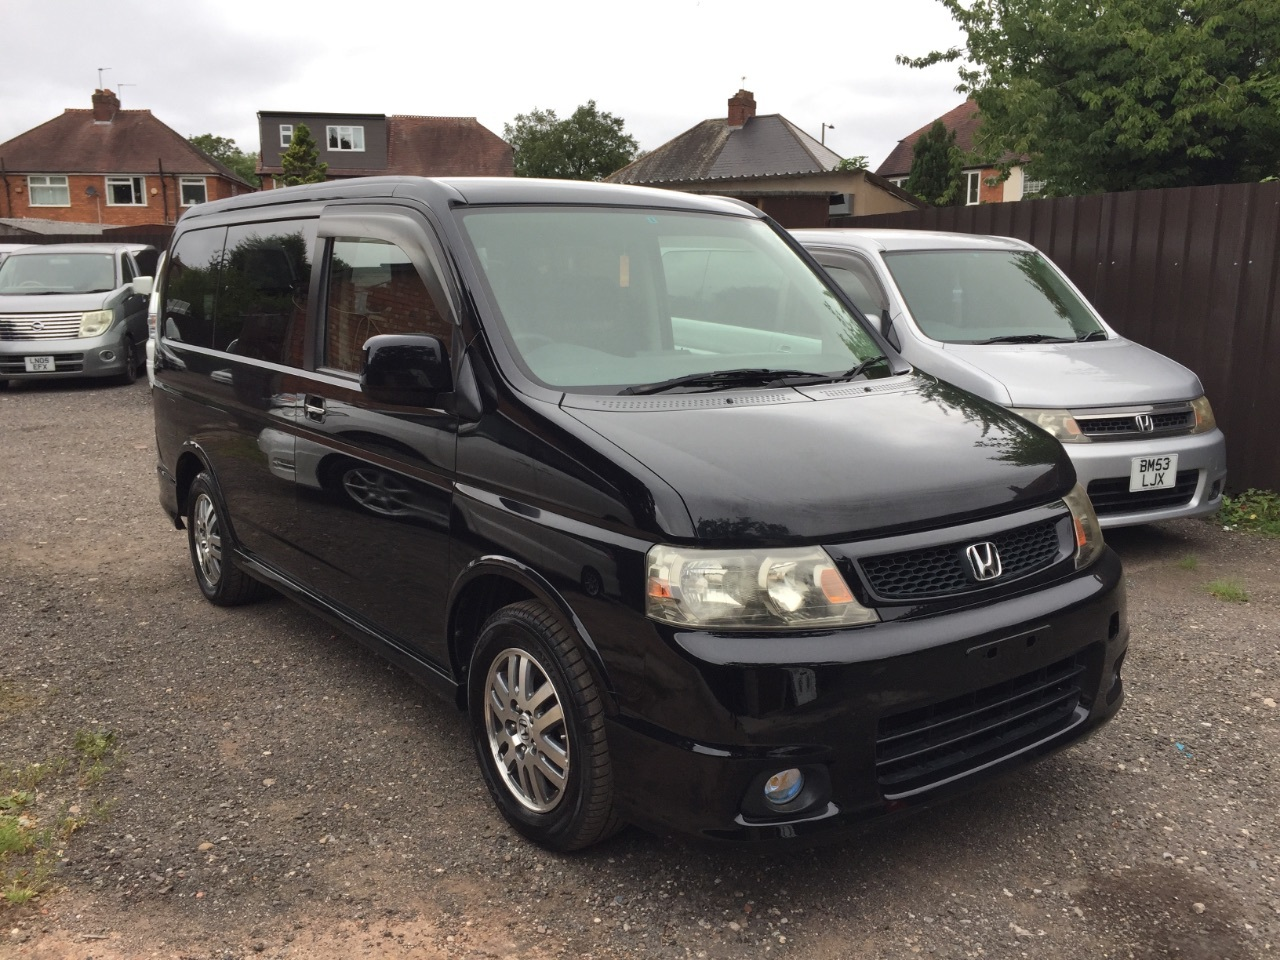 Honda Stepwagon Spada 2.0 I VTEC petrol Auto power door mpv 8seater Fresh Import MPV Petrol Black